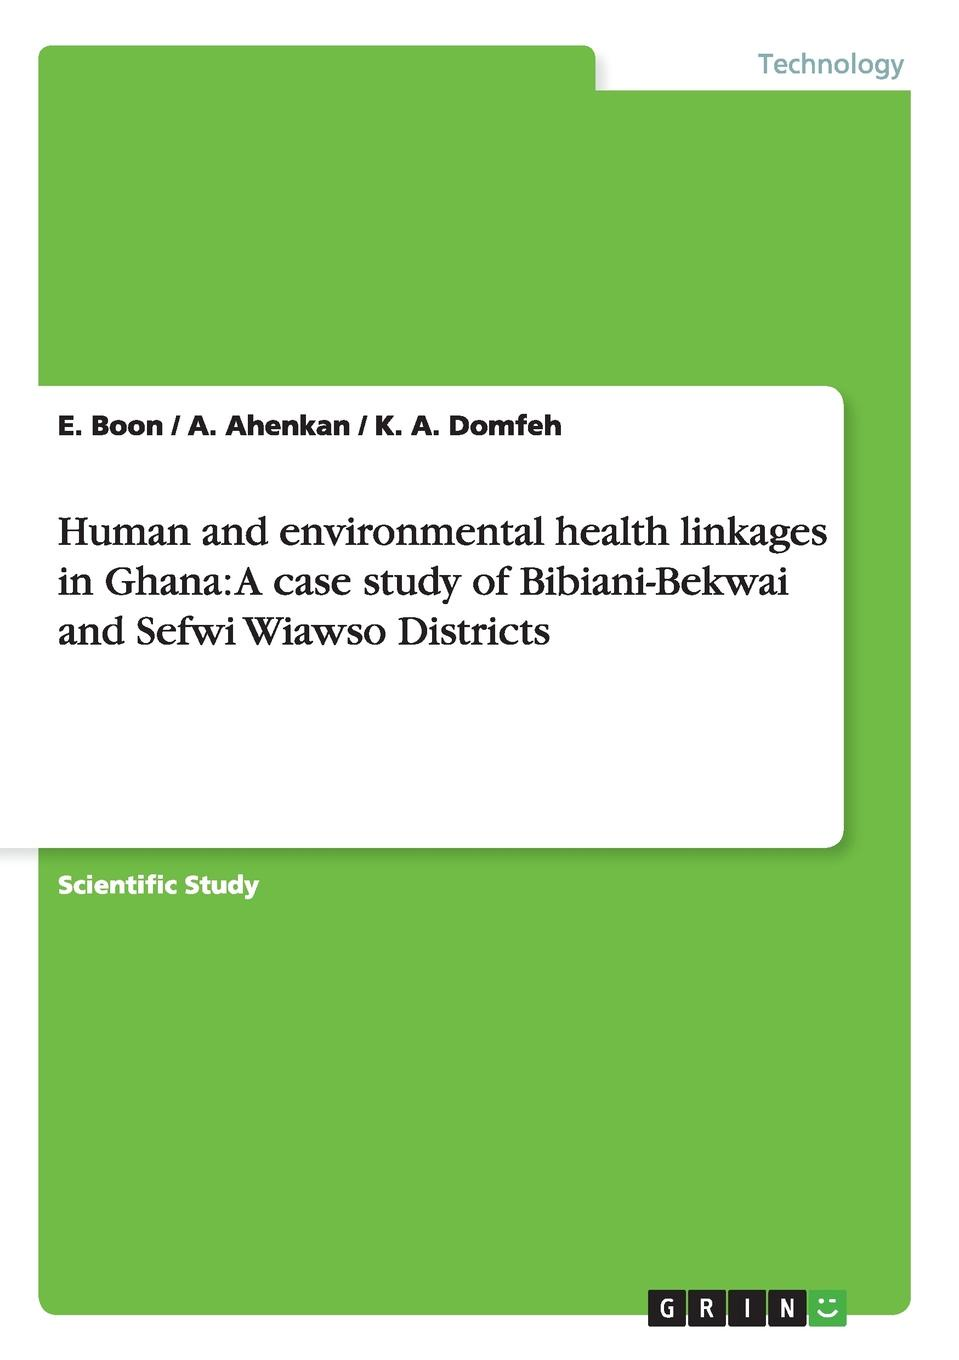 E. Boon, A. Ahenkan, K. A. Domfeh Human and environmental health linkages in Ghana. A case study of Bibiani-Bekwai and Sefwi Wiawso Districts sustainability of health insurance in ghana